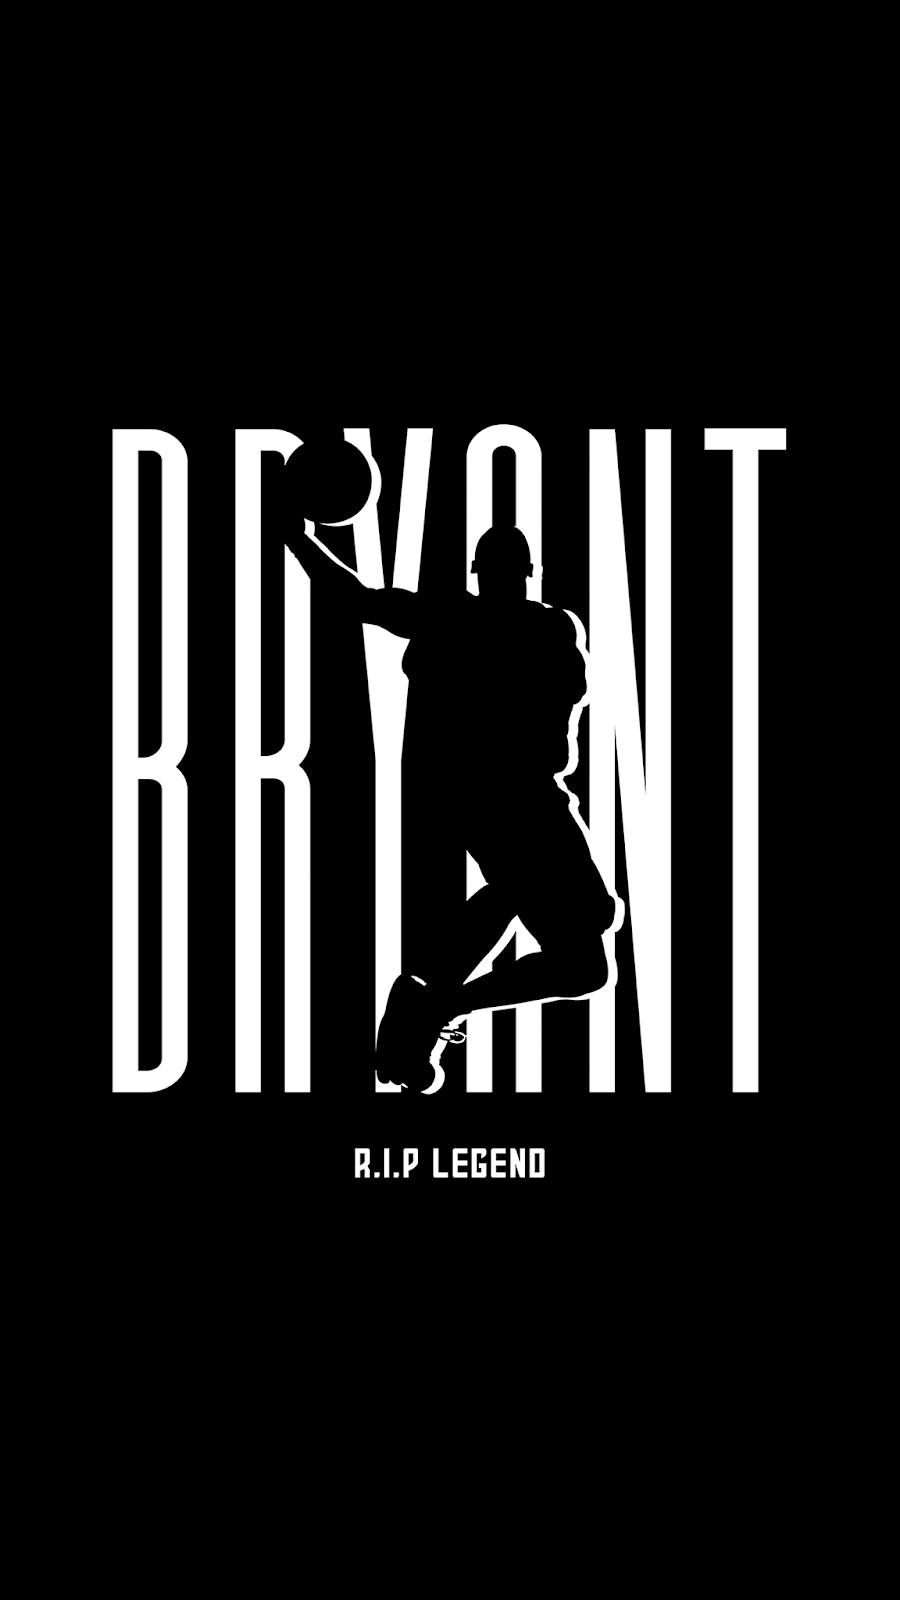 R.I.P kobe bryant wallpaper